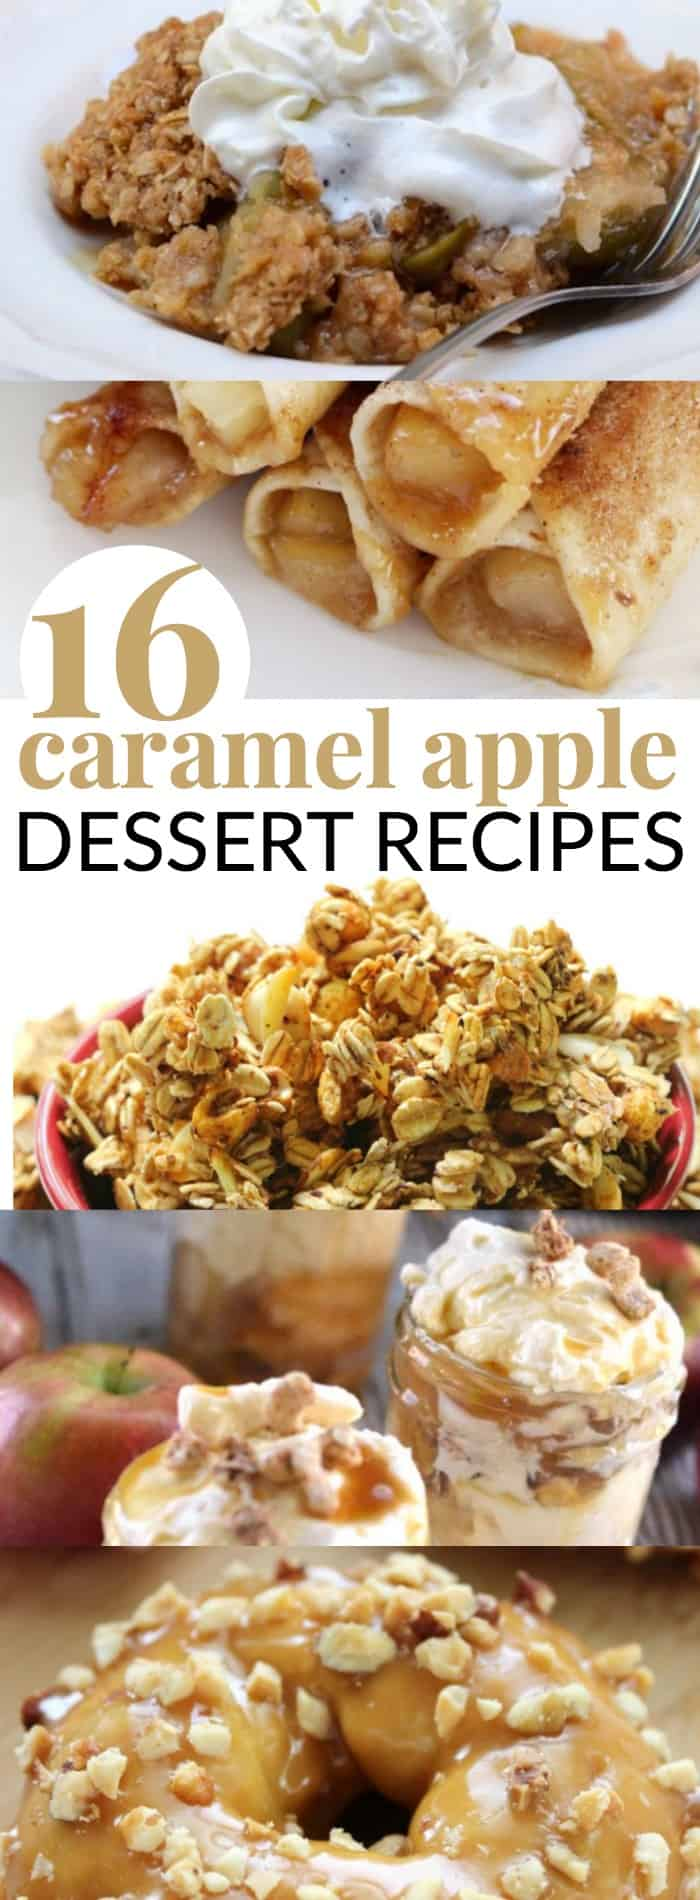 delicious caramel apple dessert recipes to try.